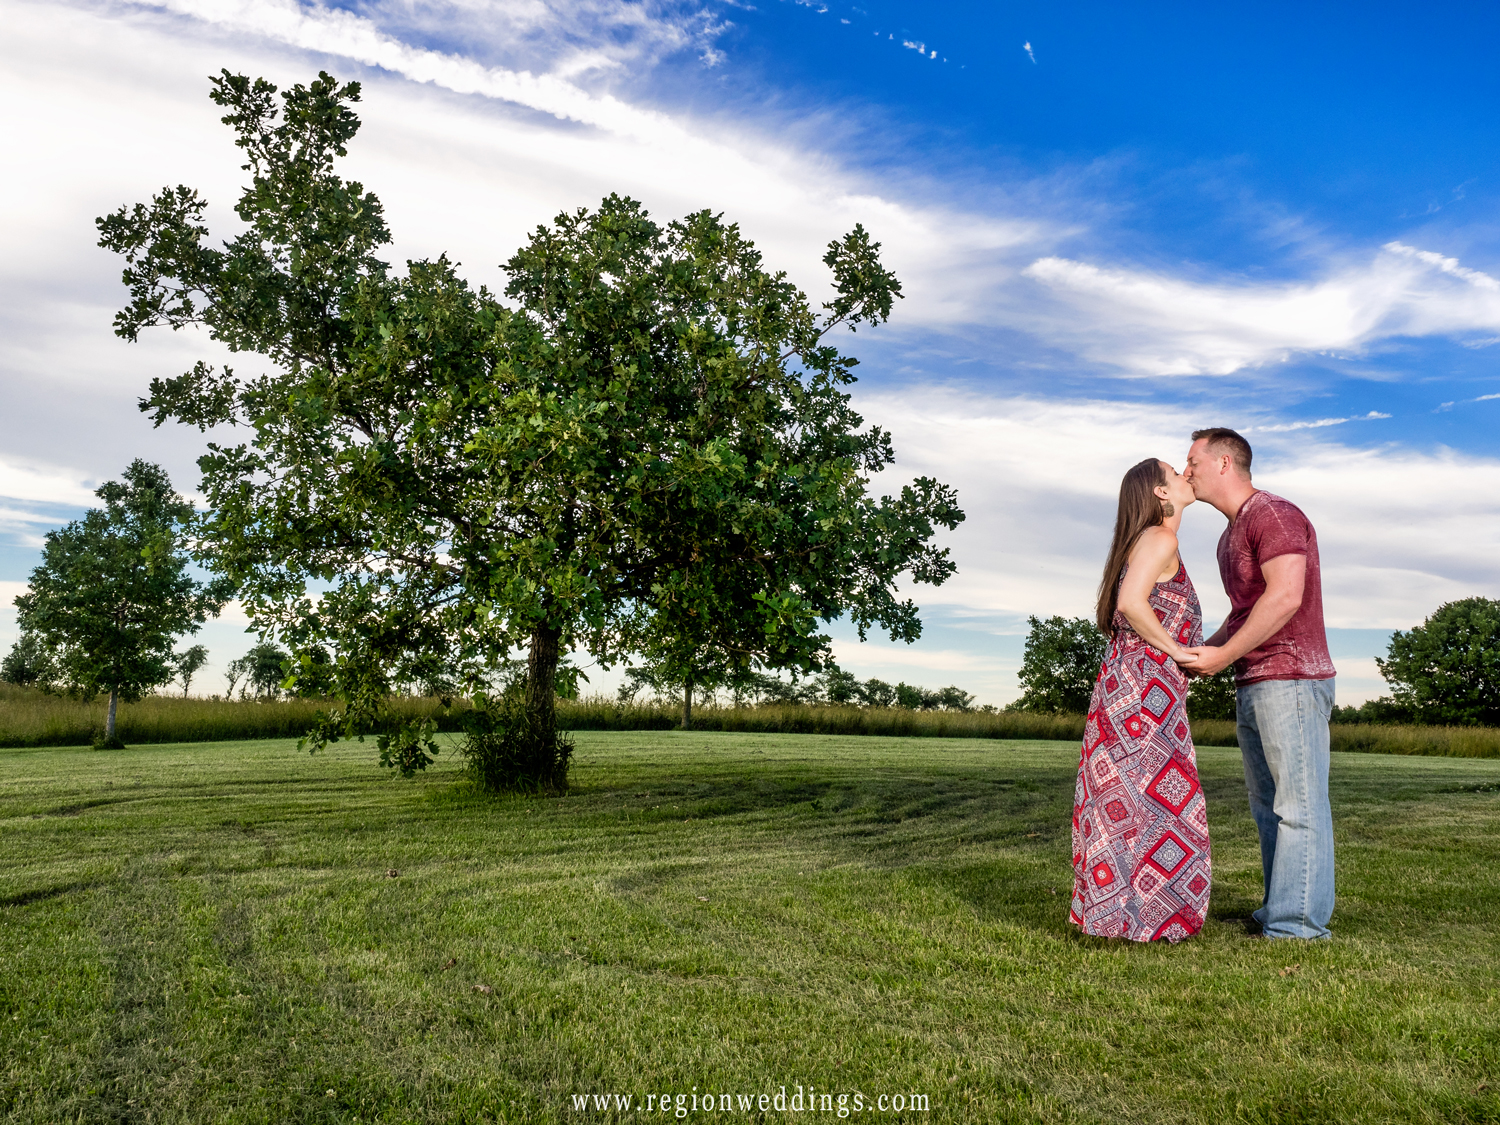 A couple shares a kiss next to a lone tree underneath blue skies.